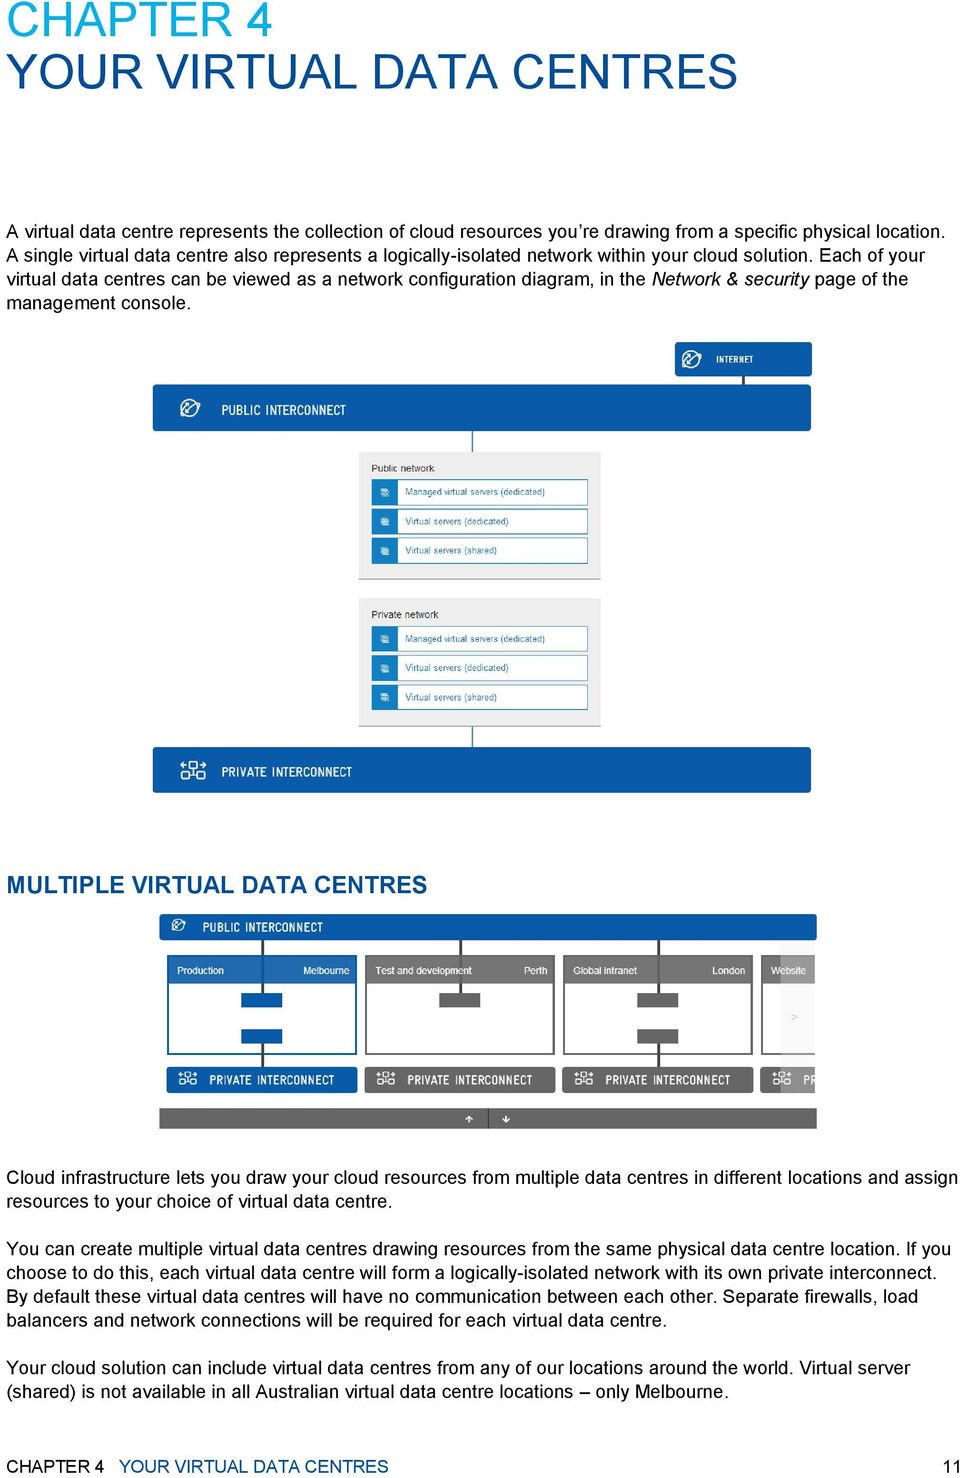 Each of your virtual data centres can be viewed as a network configuration diagram, in the Network & security page of the management console.